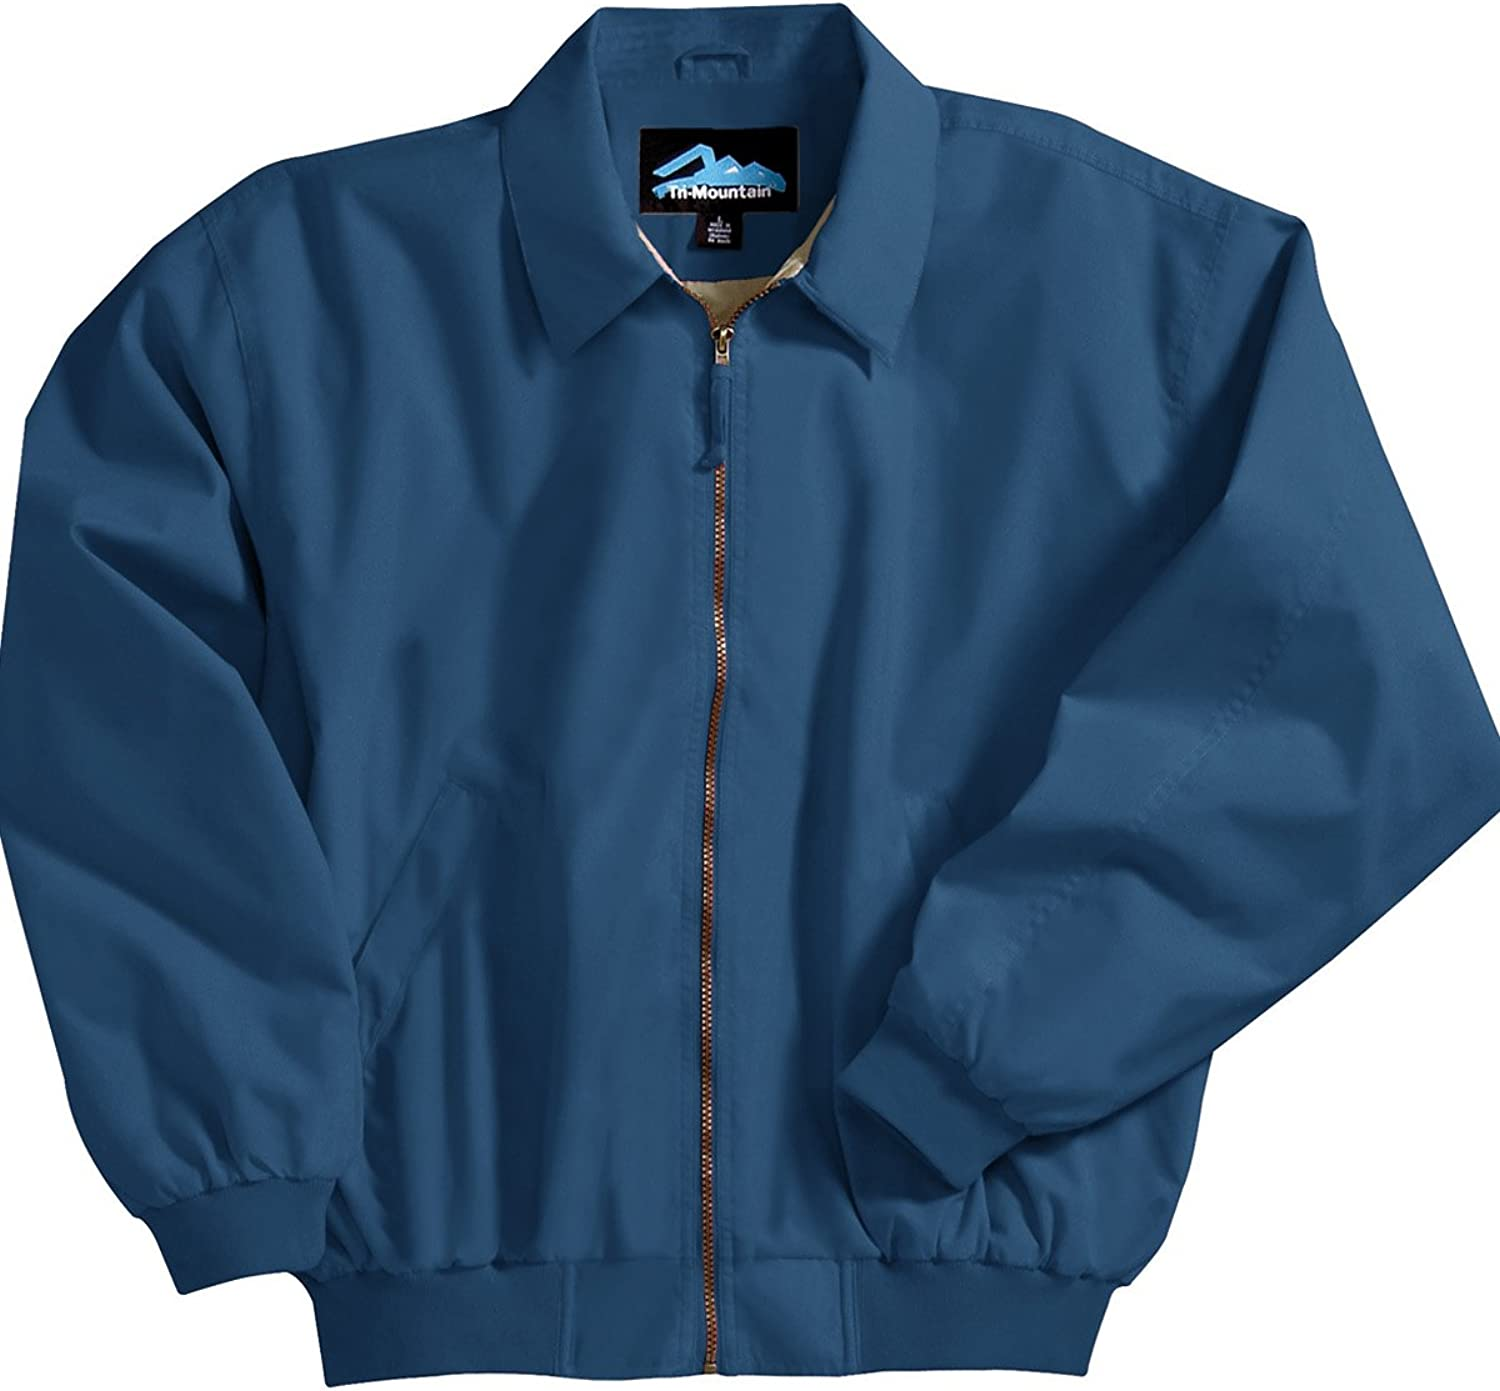 Achiever Microfiber Jacket with Poplin Lining, Color: Midnight Blue, Size: XXXX-Large